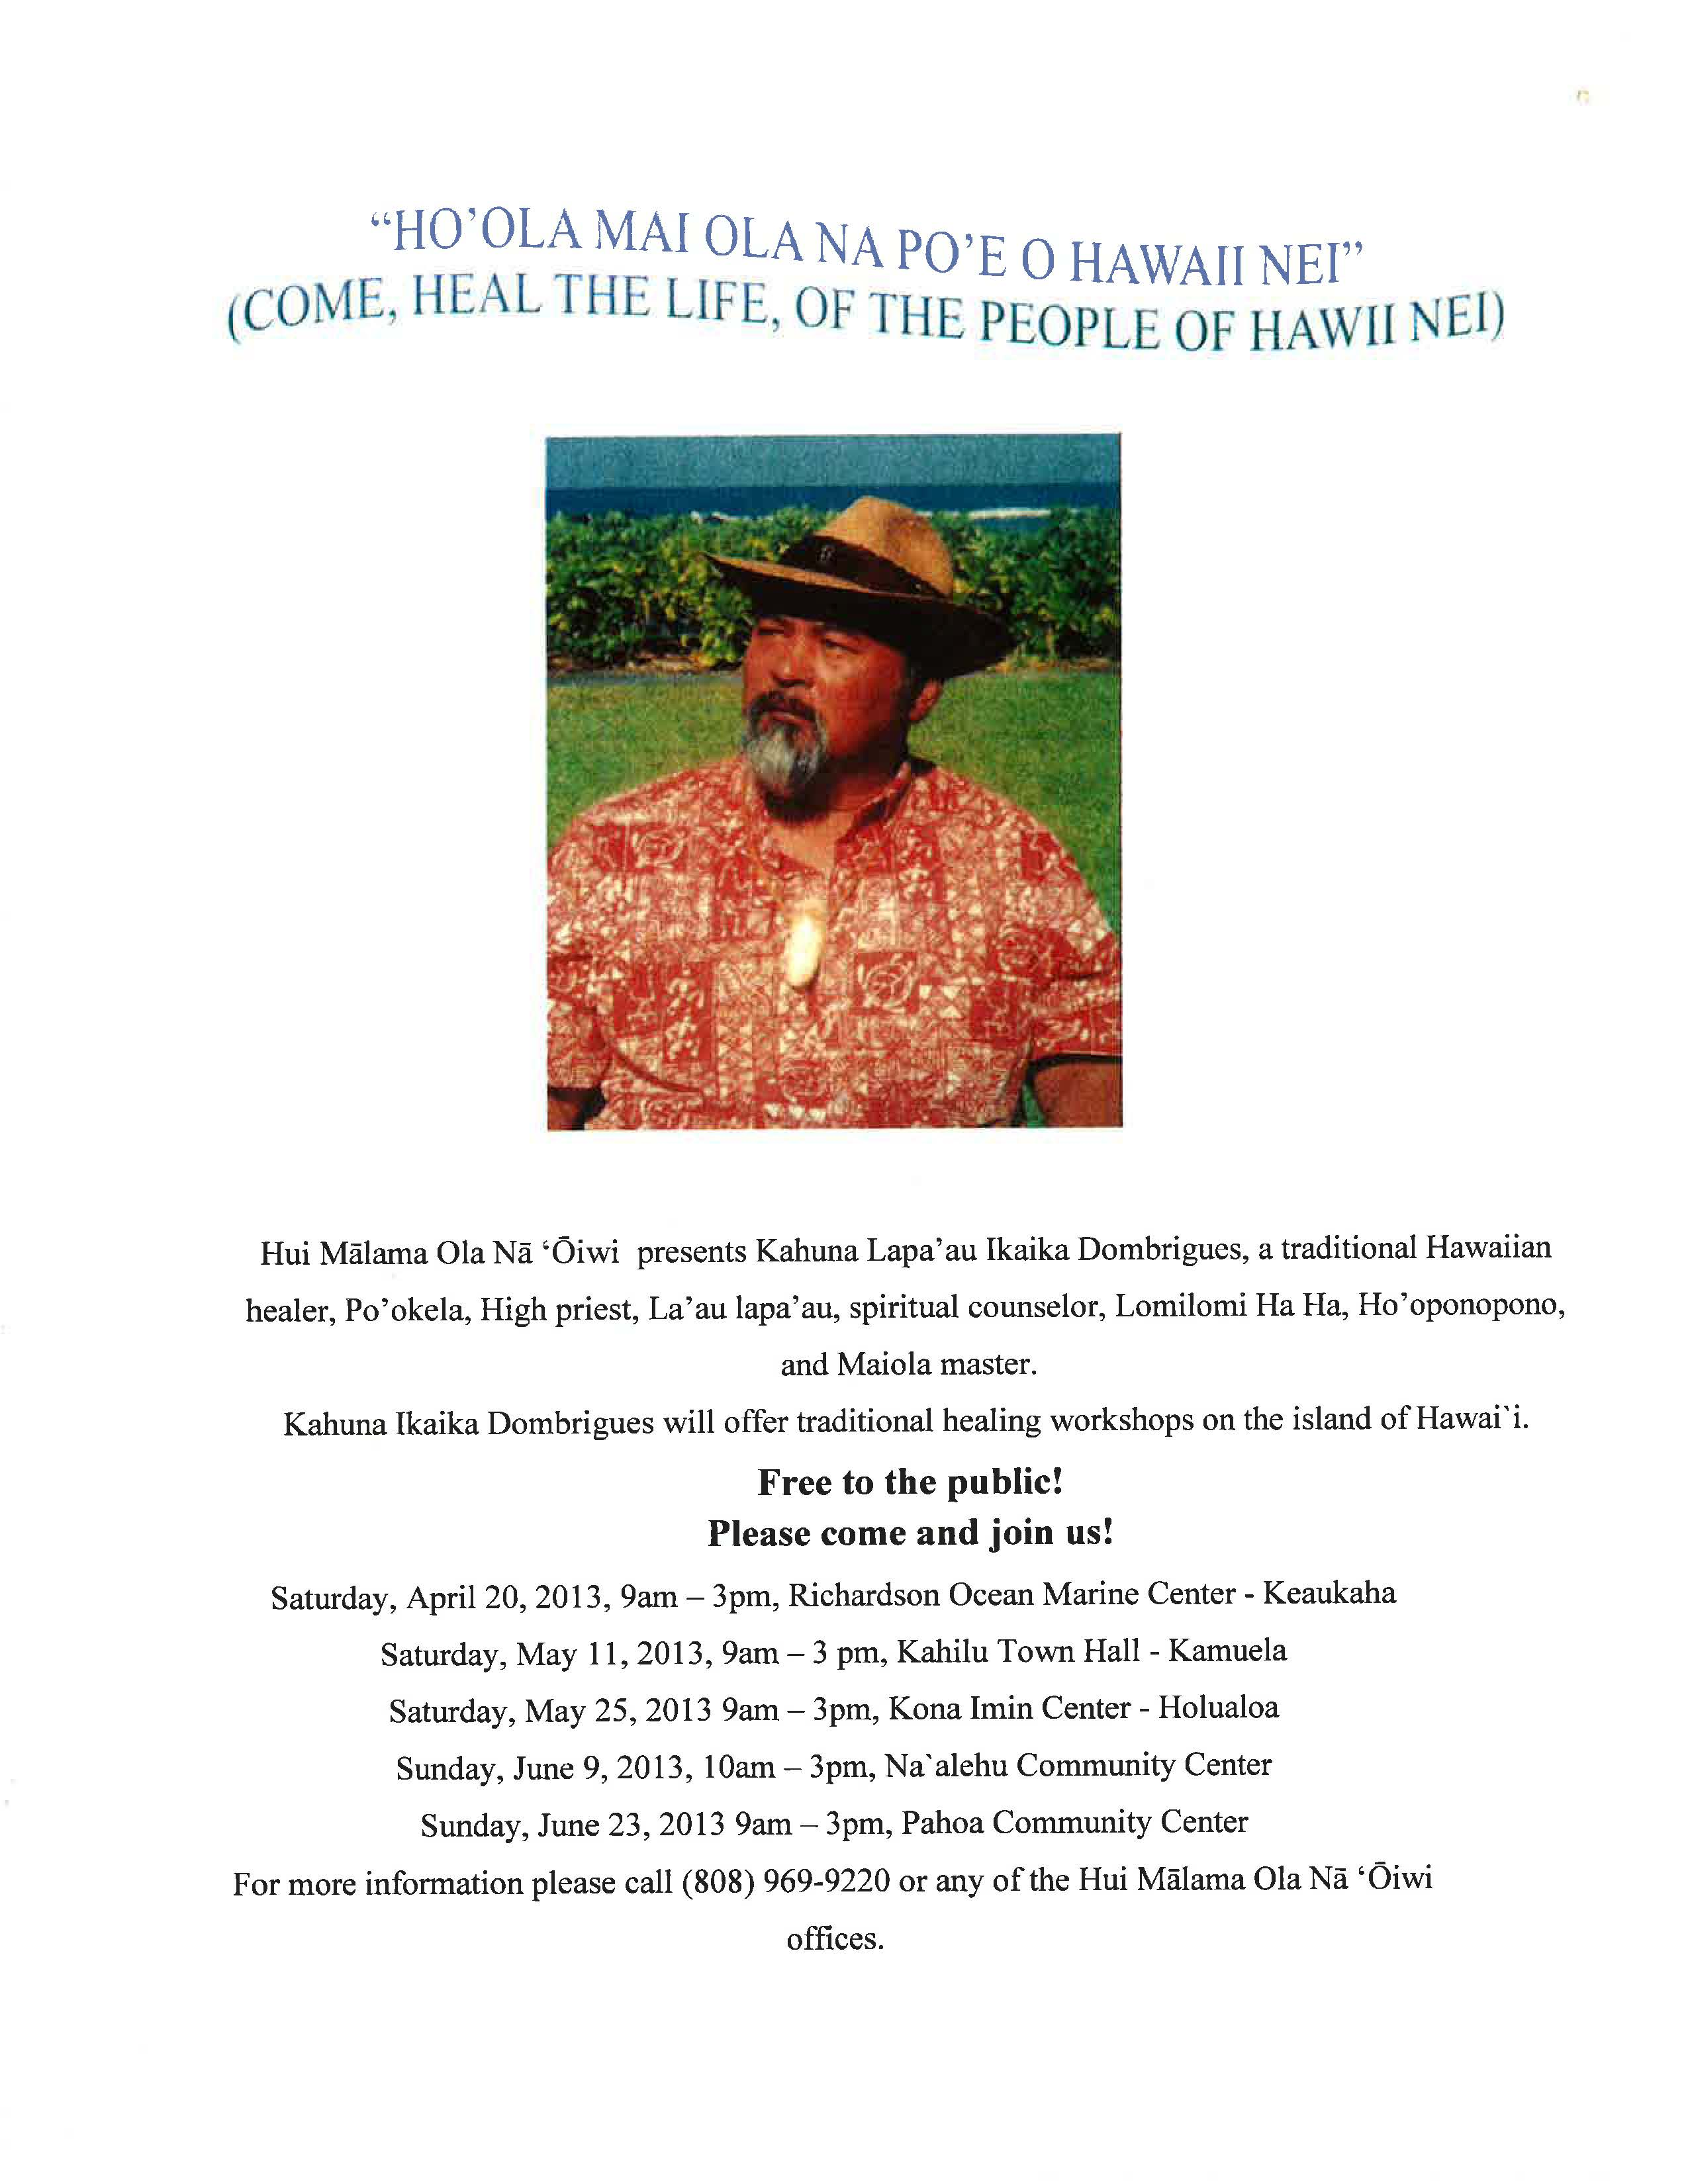 Traditional Healing Workshops on the Island of Hawaii